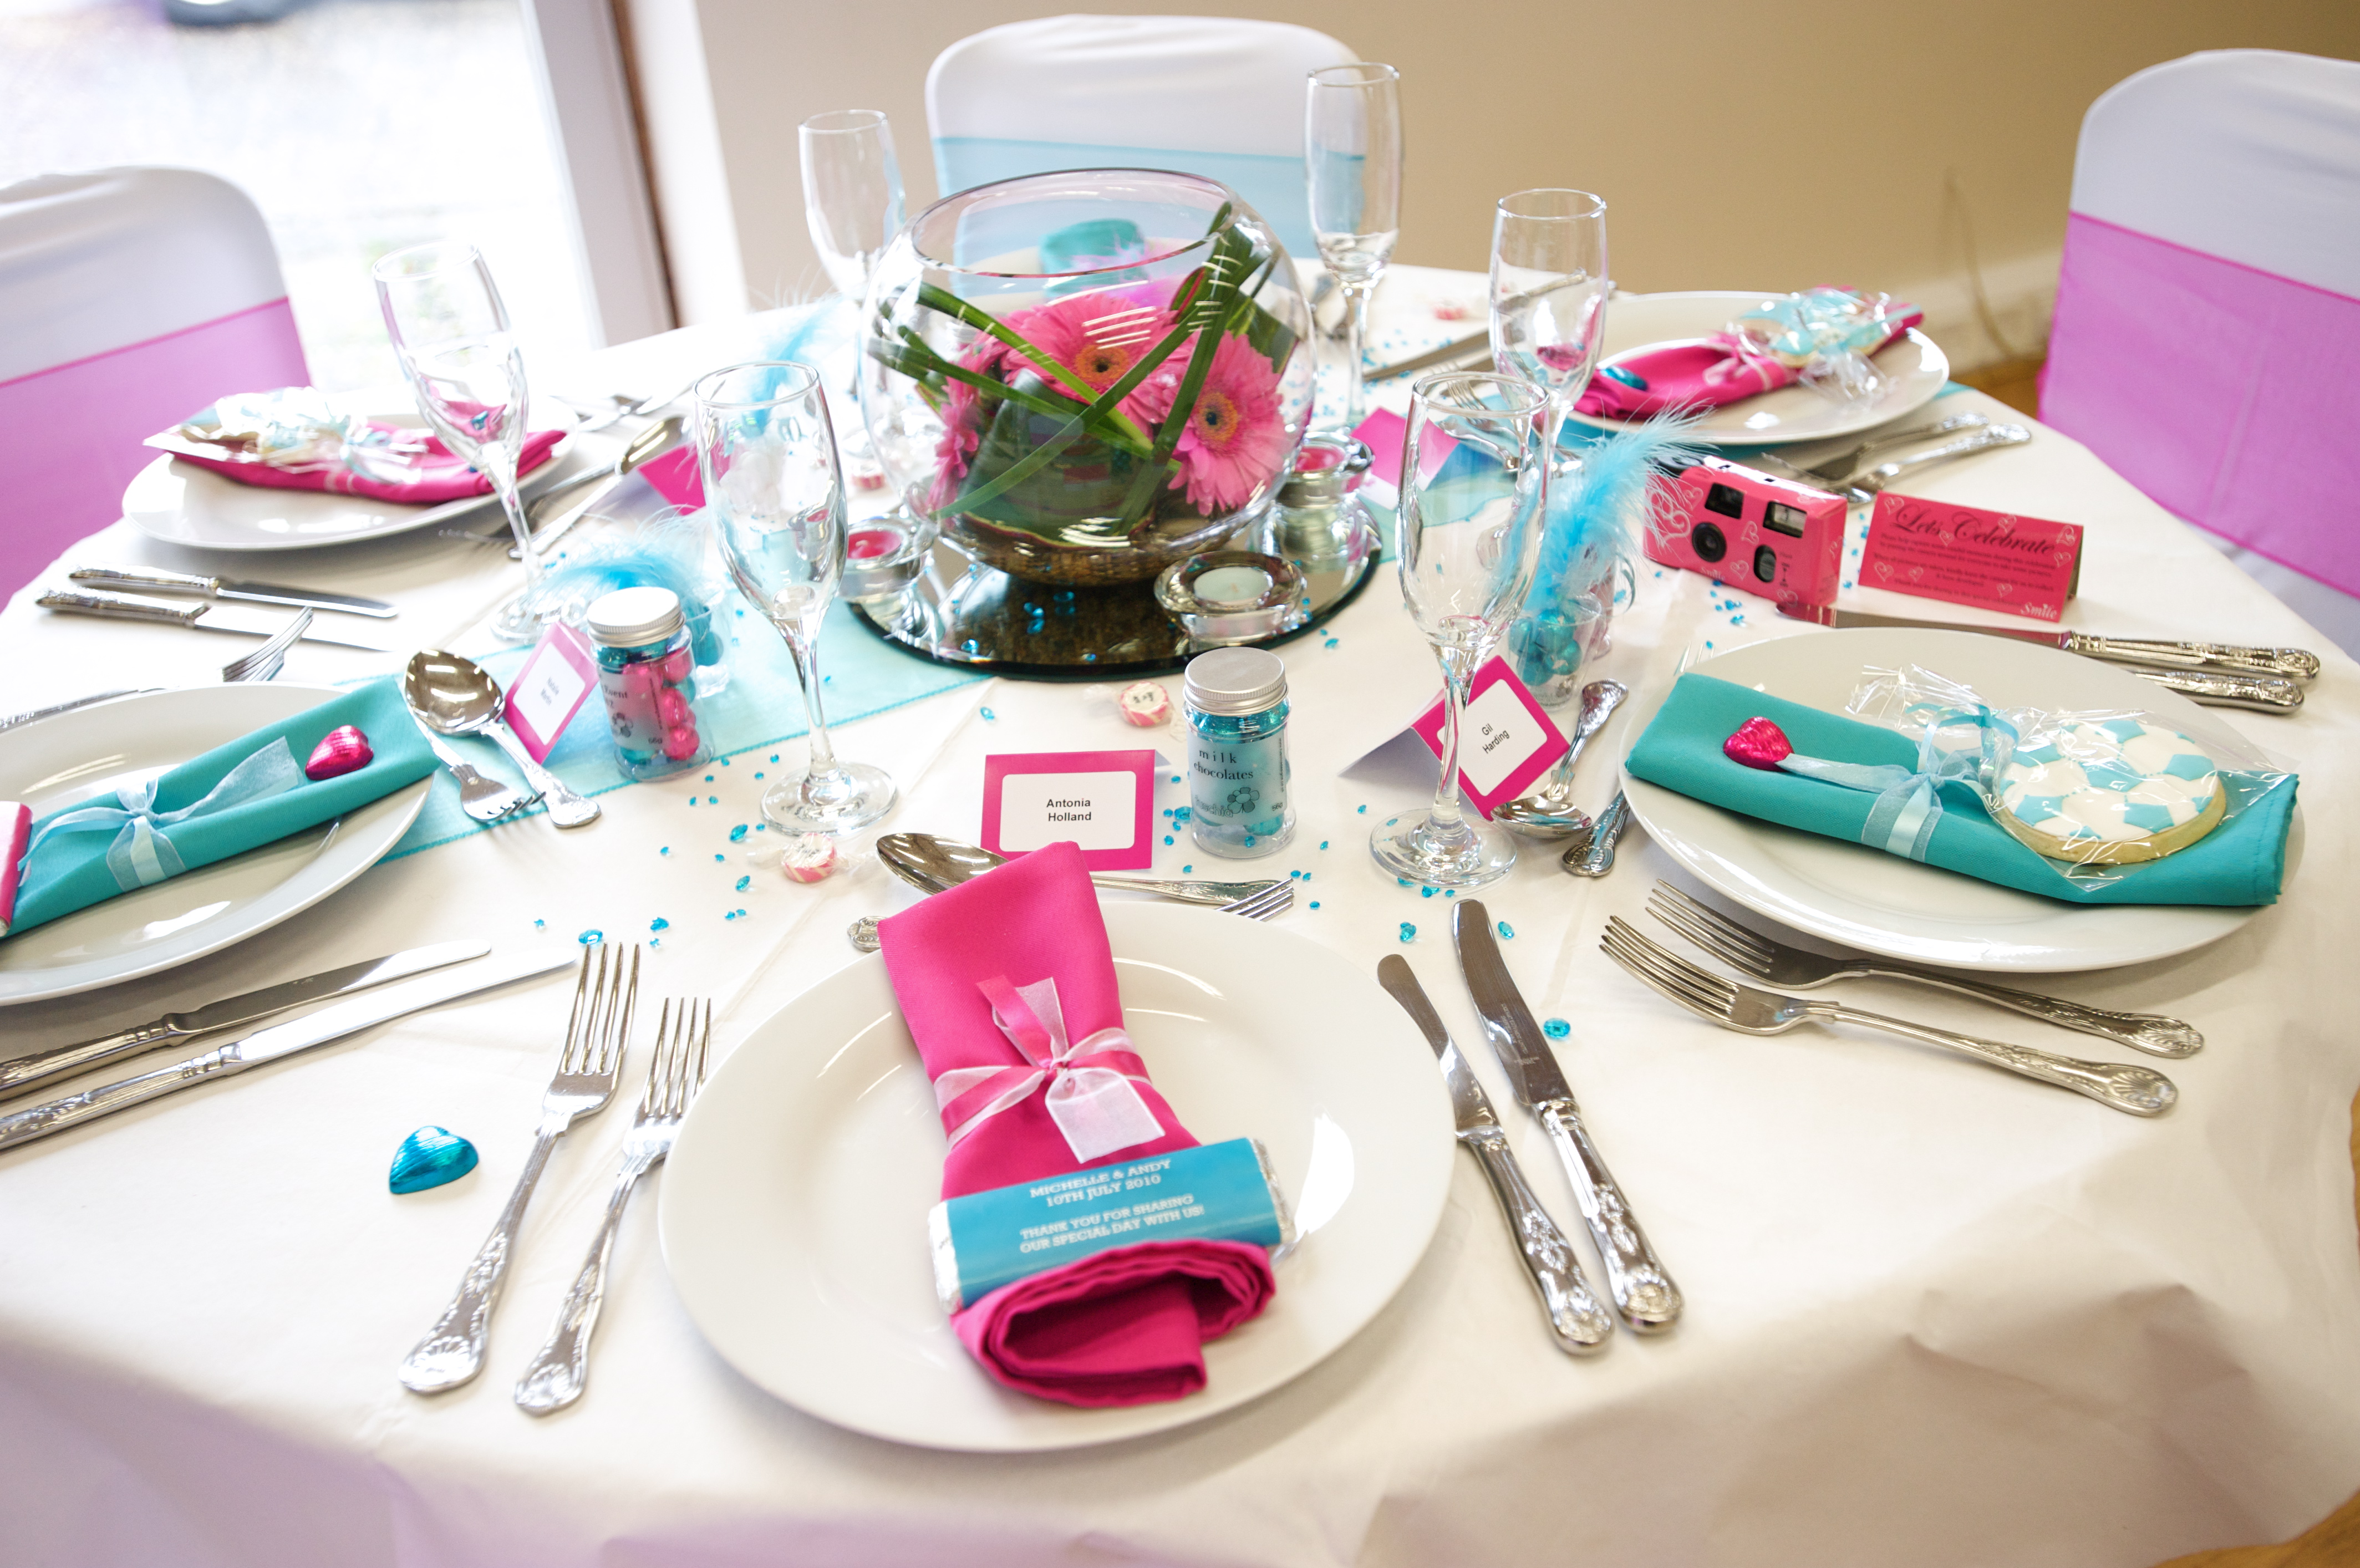 teal chair covers for wedding antique white kitchen table and chairs turquoise pink reception ideas | fuschiadesigns